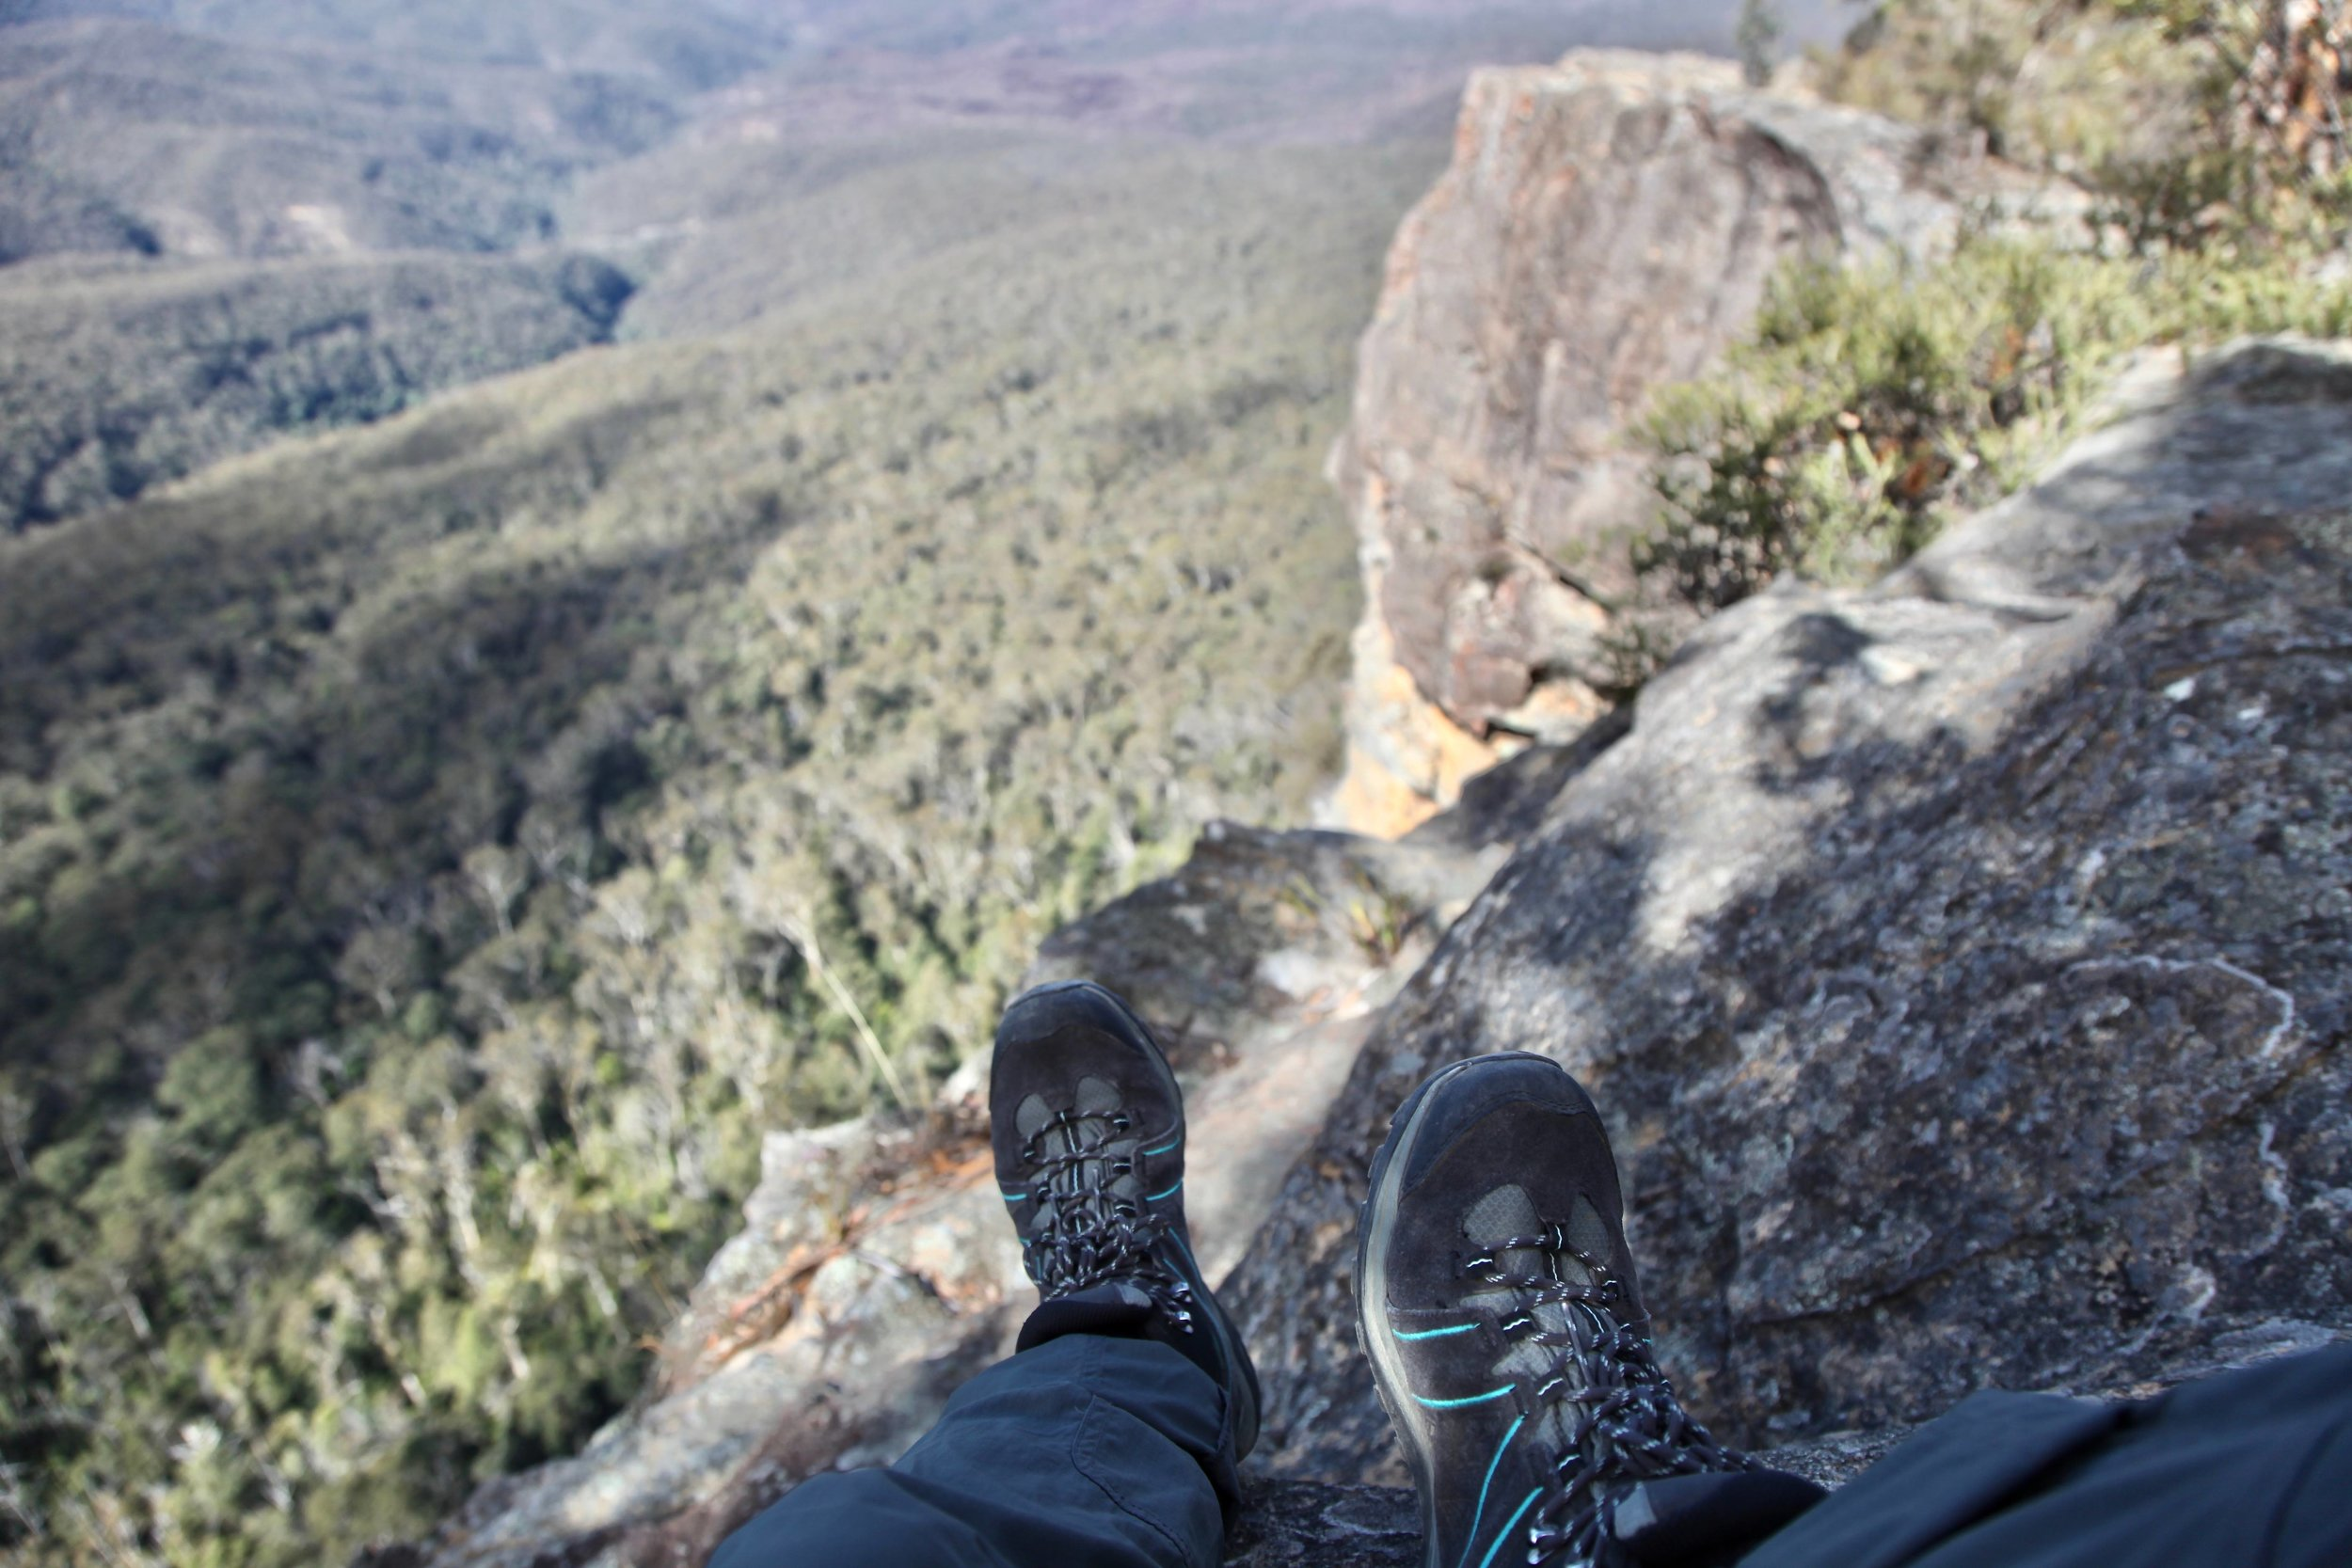 Before you reach the end of the Castle Head track you'll pass some epic views across the Jamison Valley.